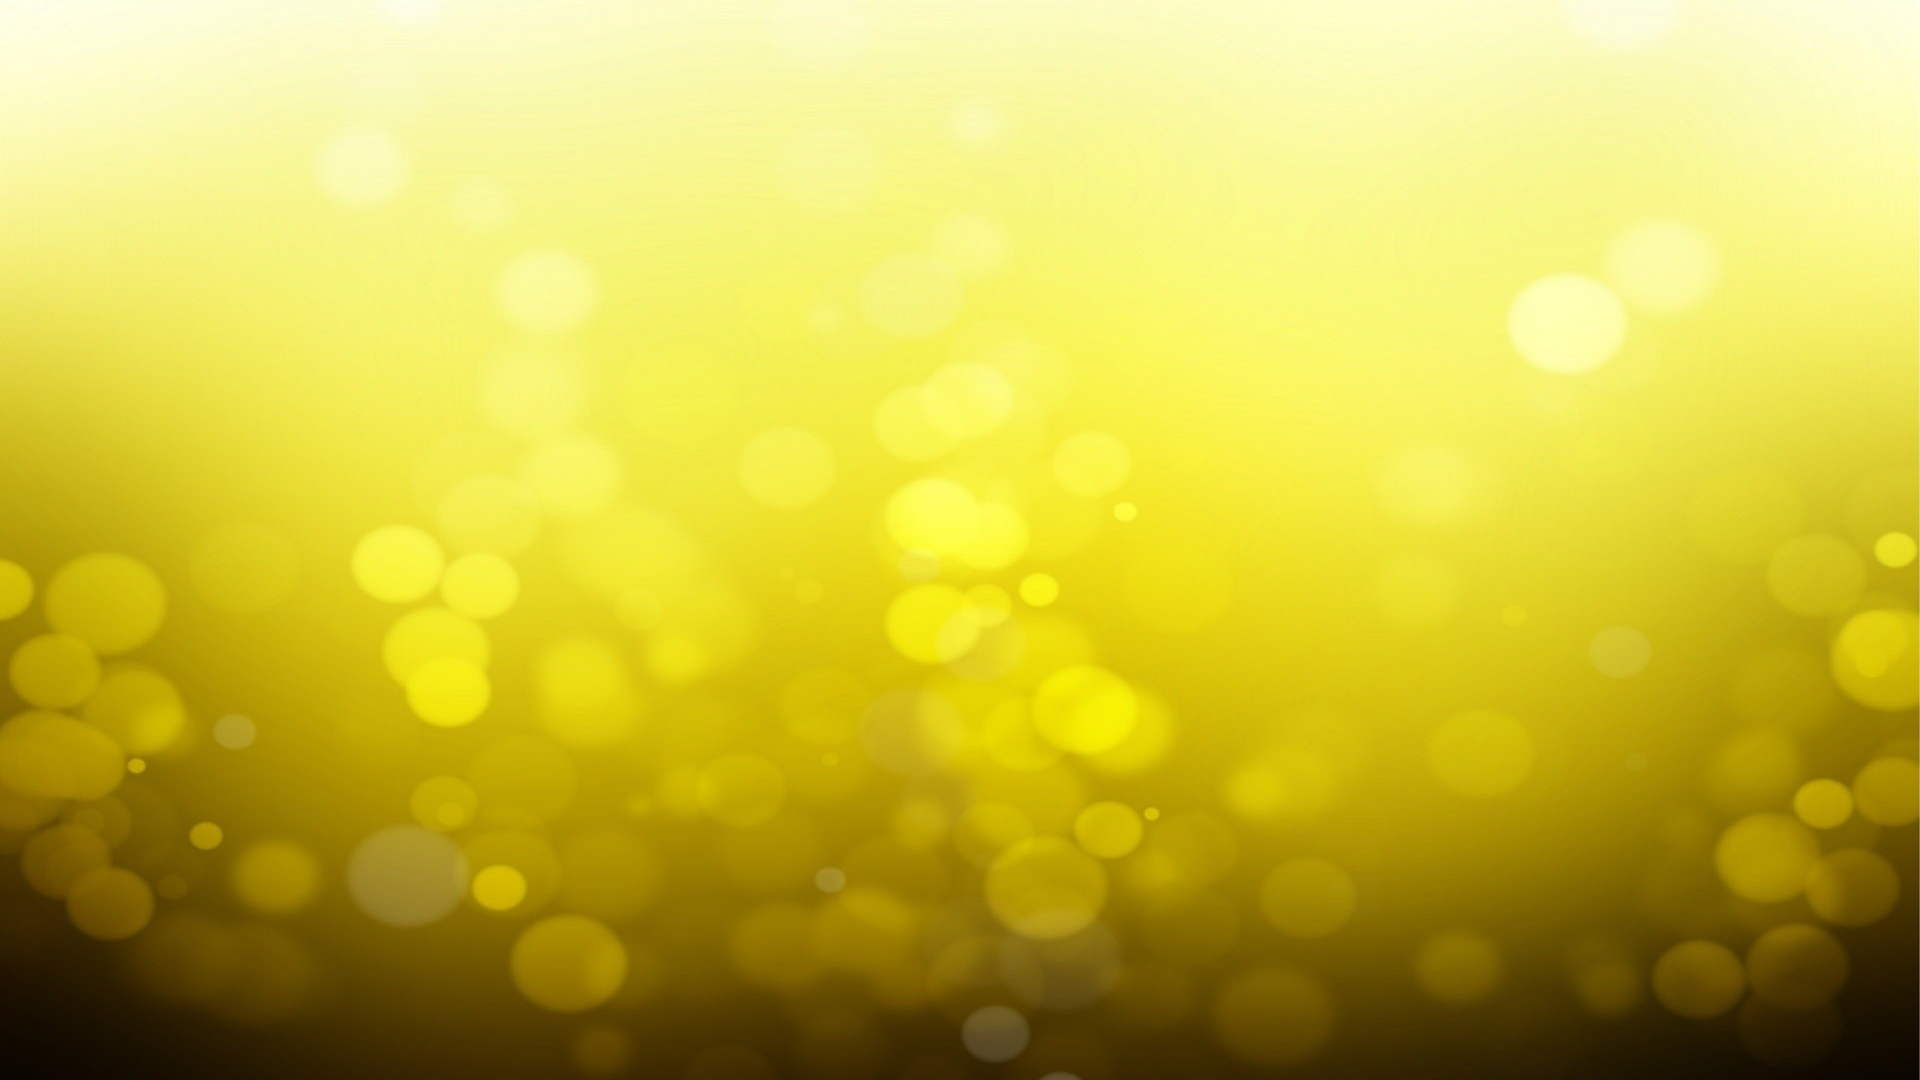 Download these 42 yellow wallpapers in high definition for for In wallpaper